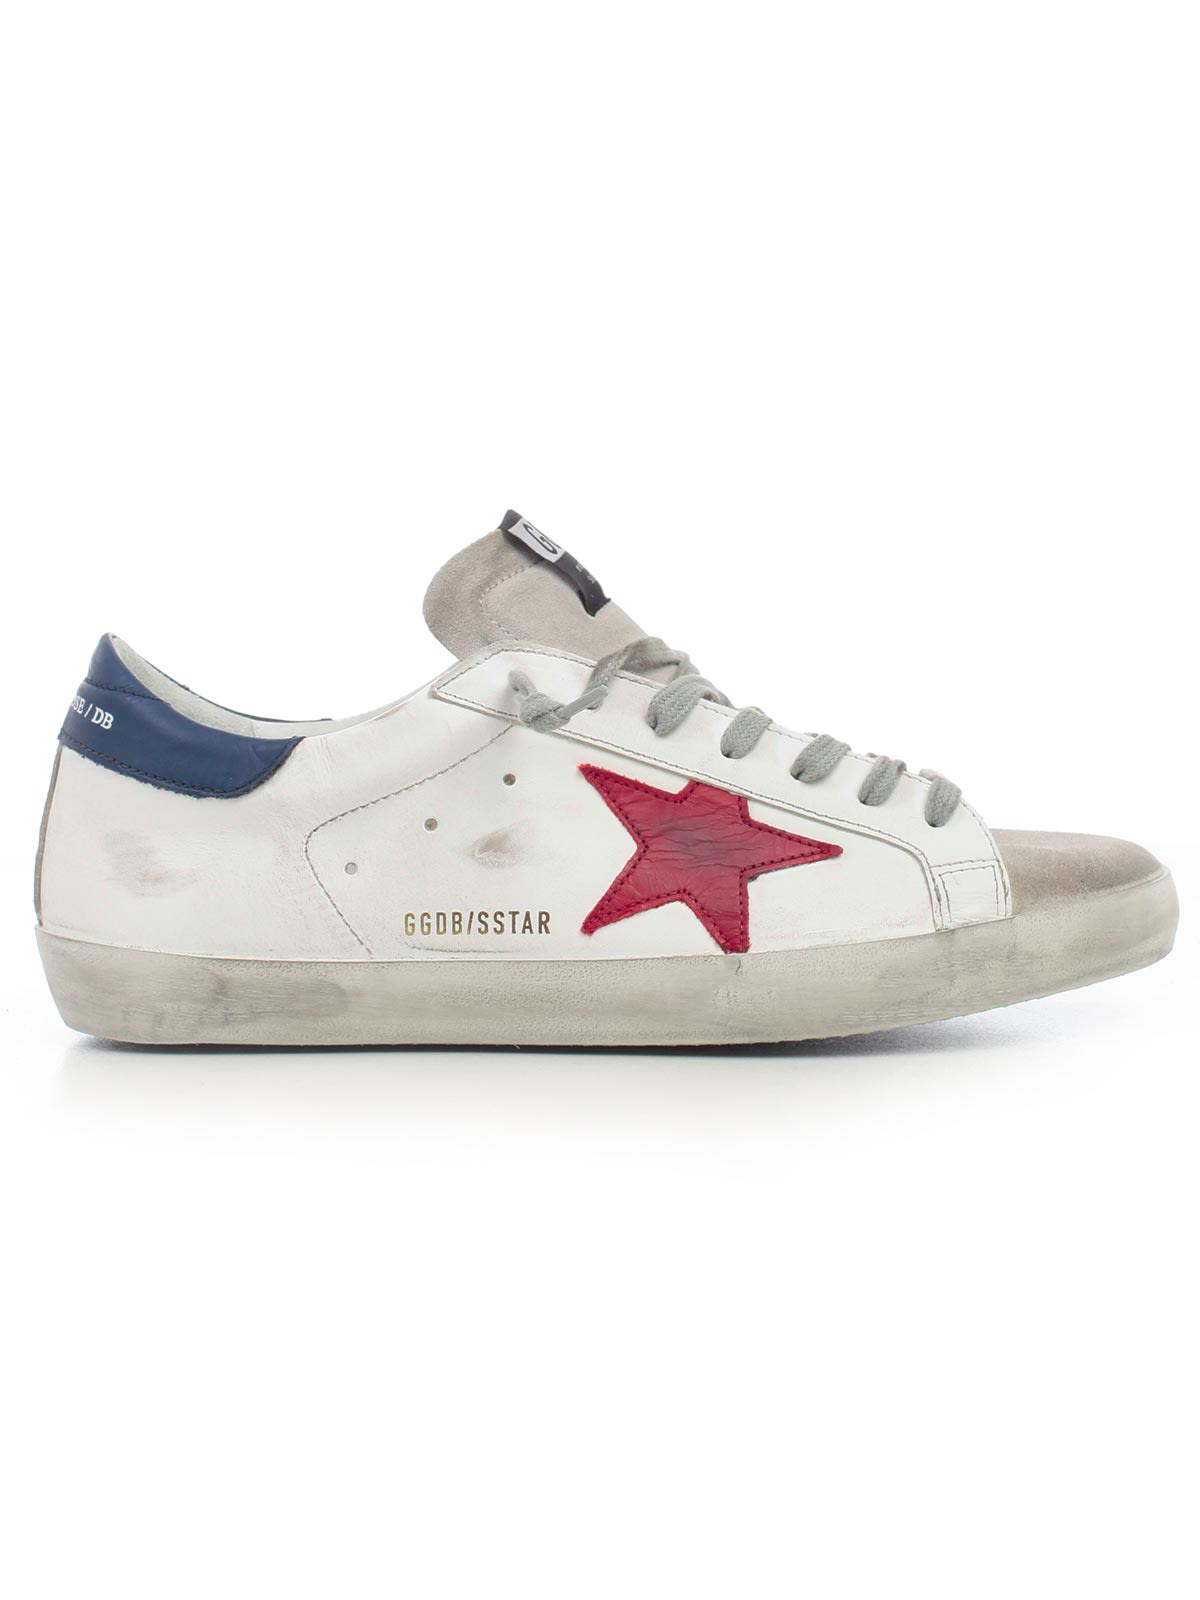 ff8a9f87dfe4 Golden Goose Deluxe Brand Superstar Sneakers In White Leather Red Star